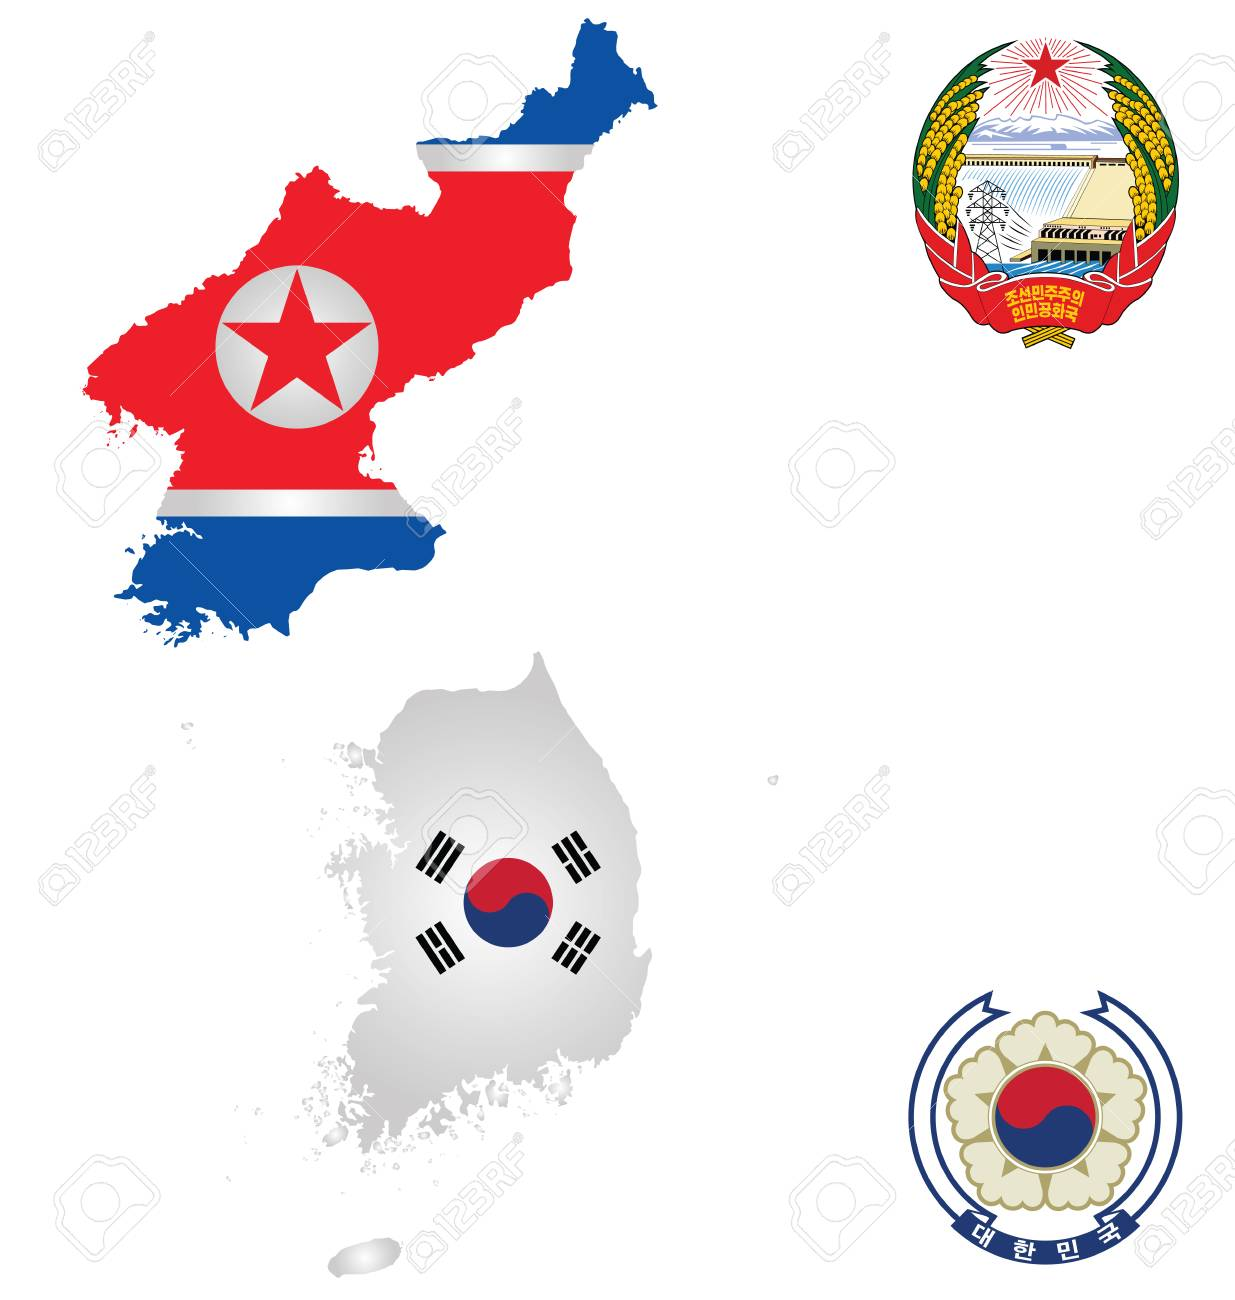 Flags And National Emblems Of The North And South Korea Overlaid